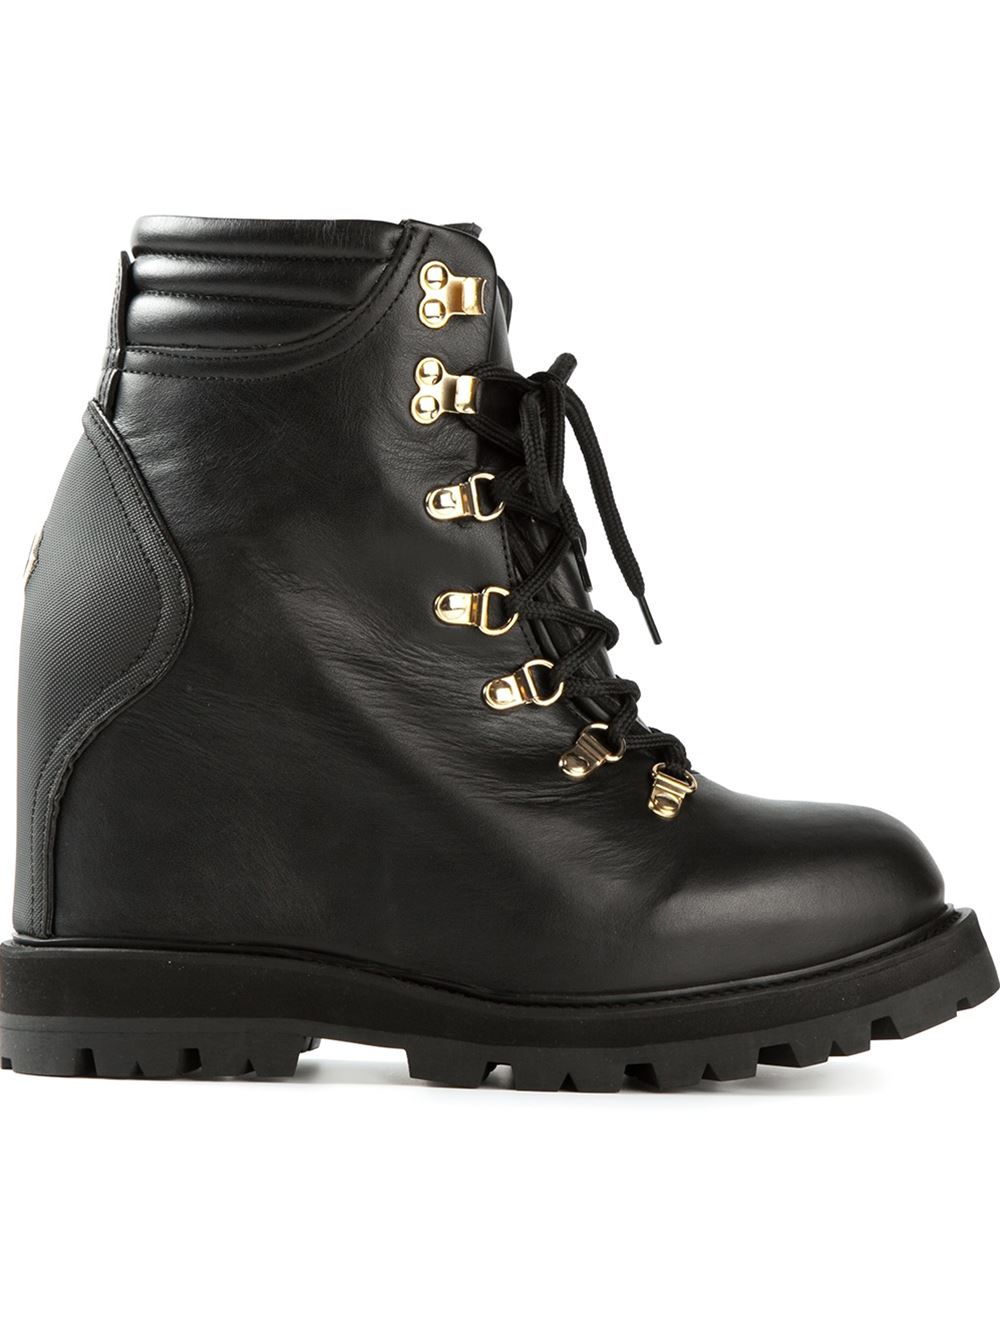 moncler concealed wedge lace up boots in black lyst